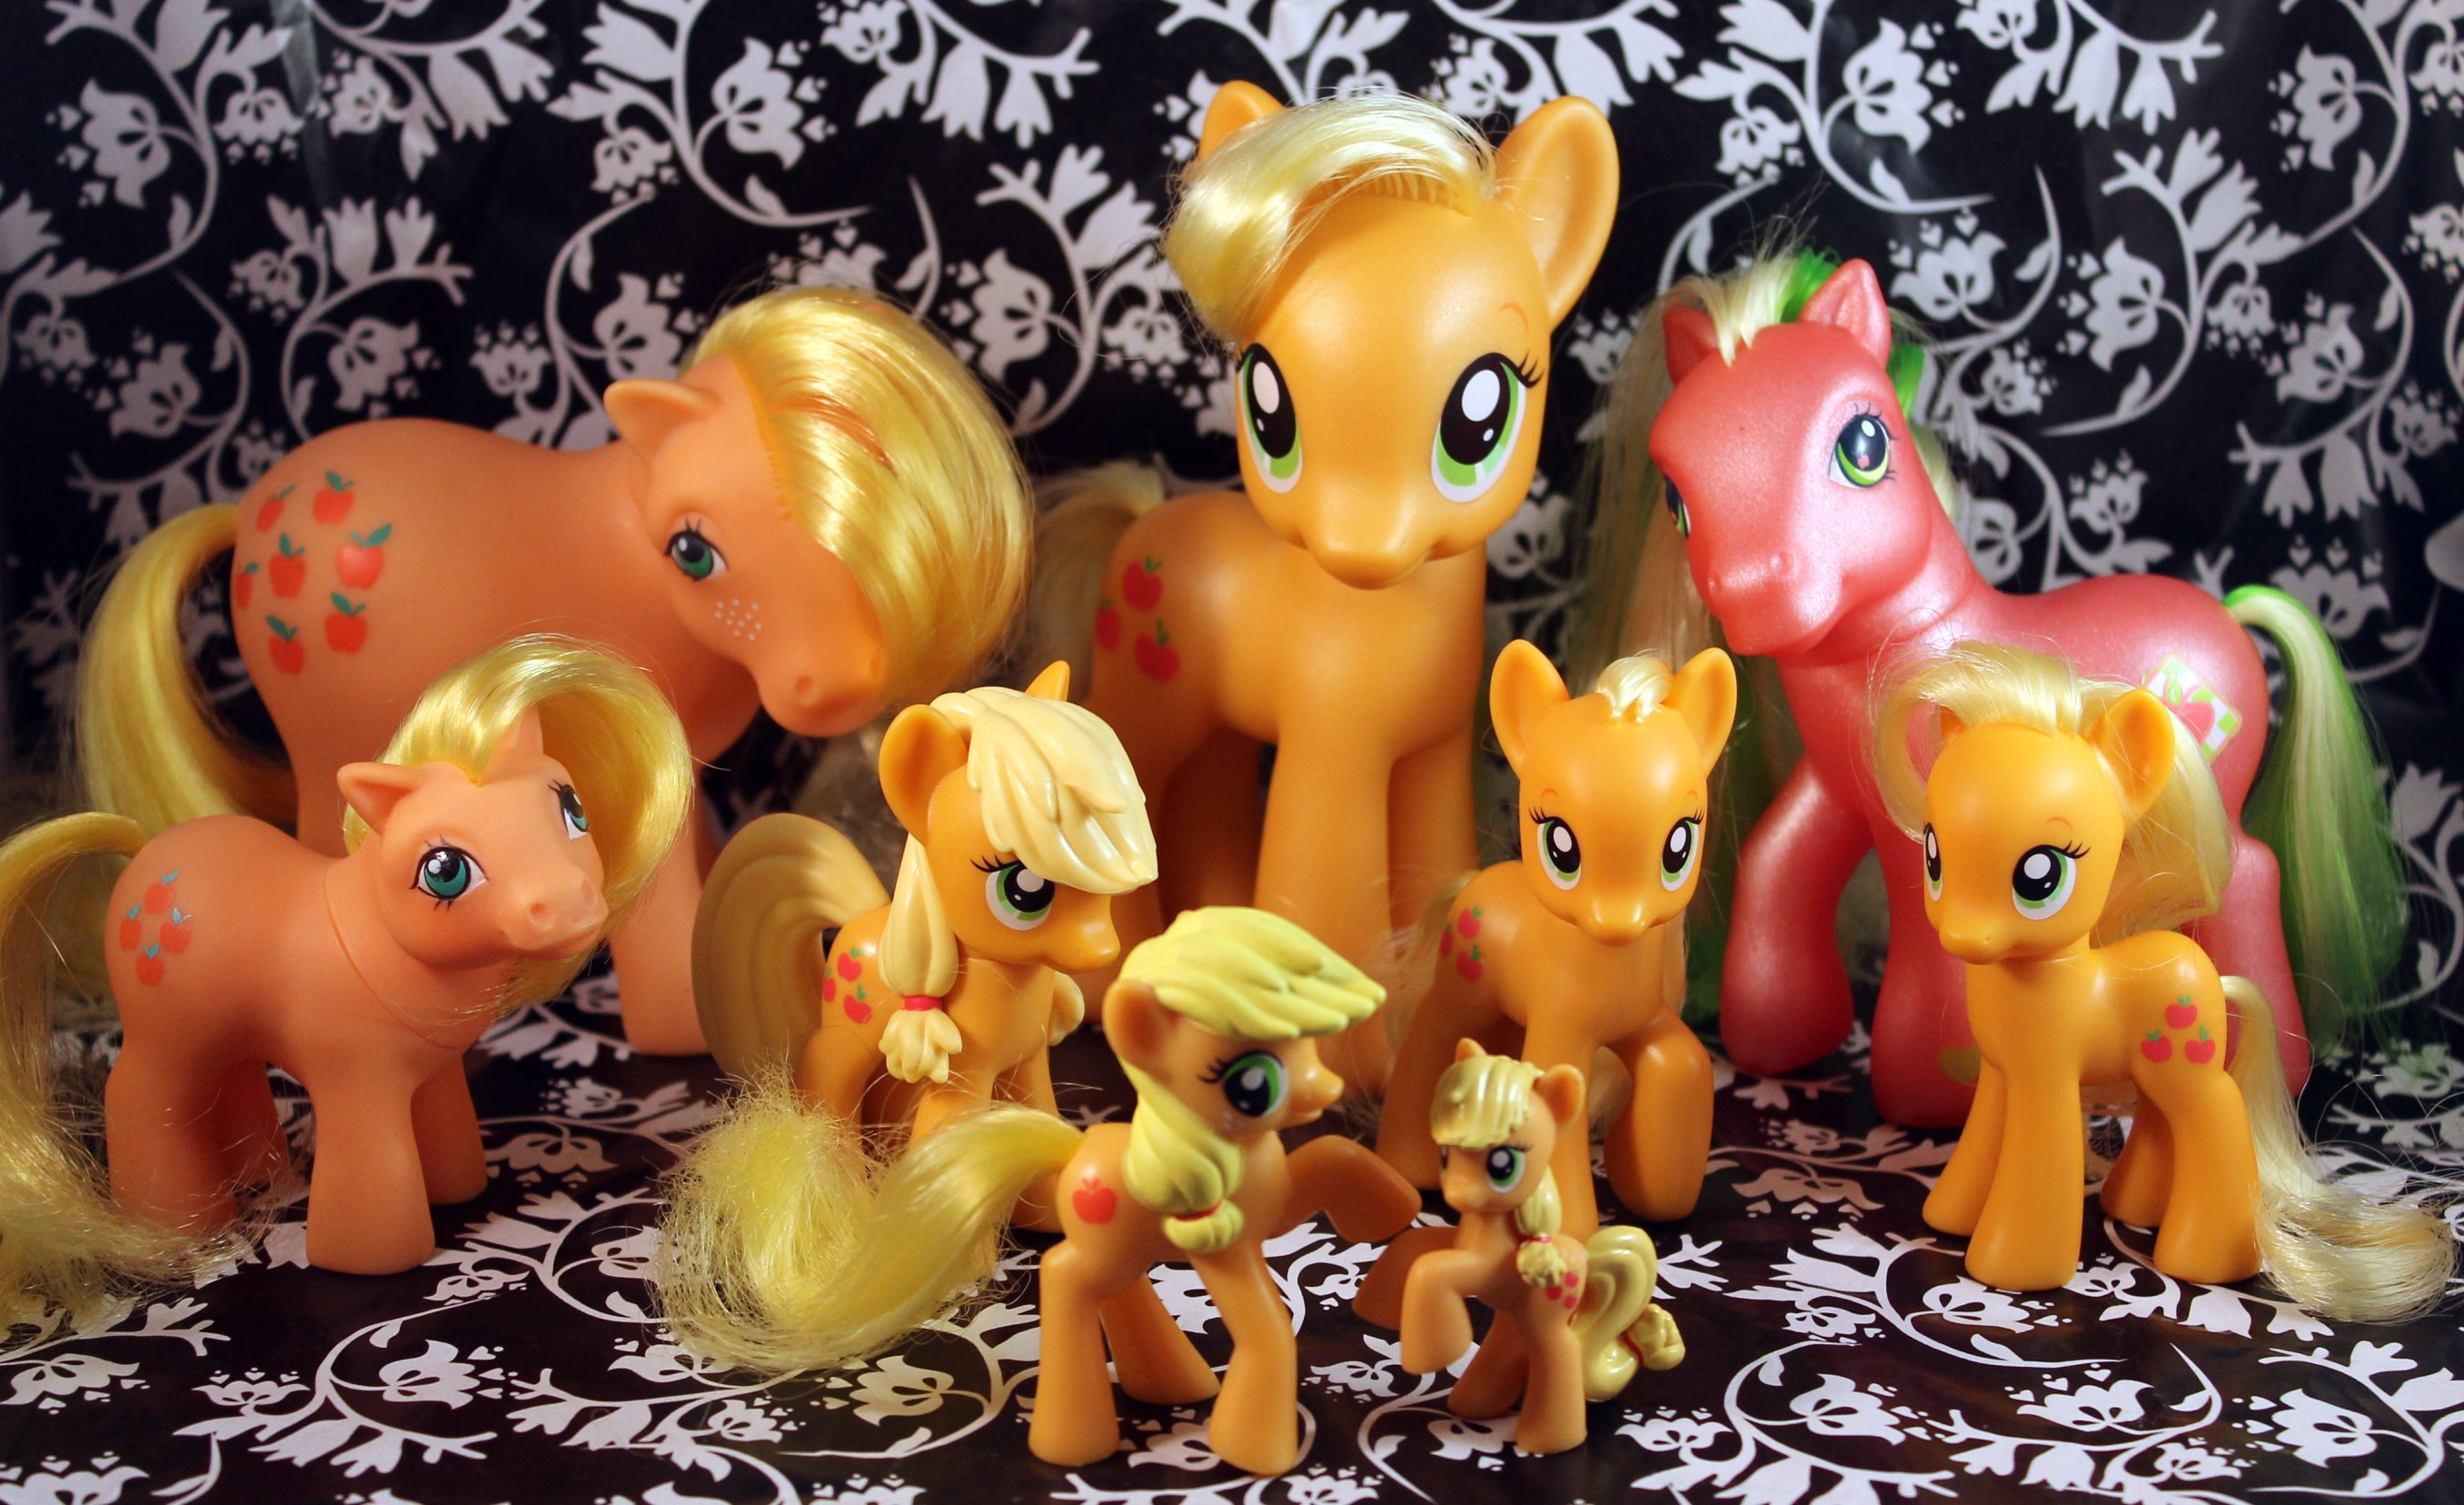 Toys - My Little Pony Friendship is Magic Wiki